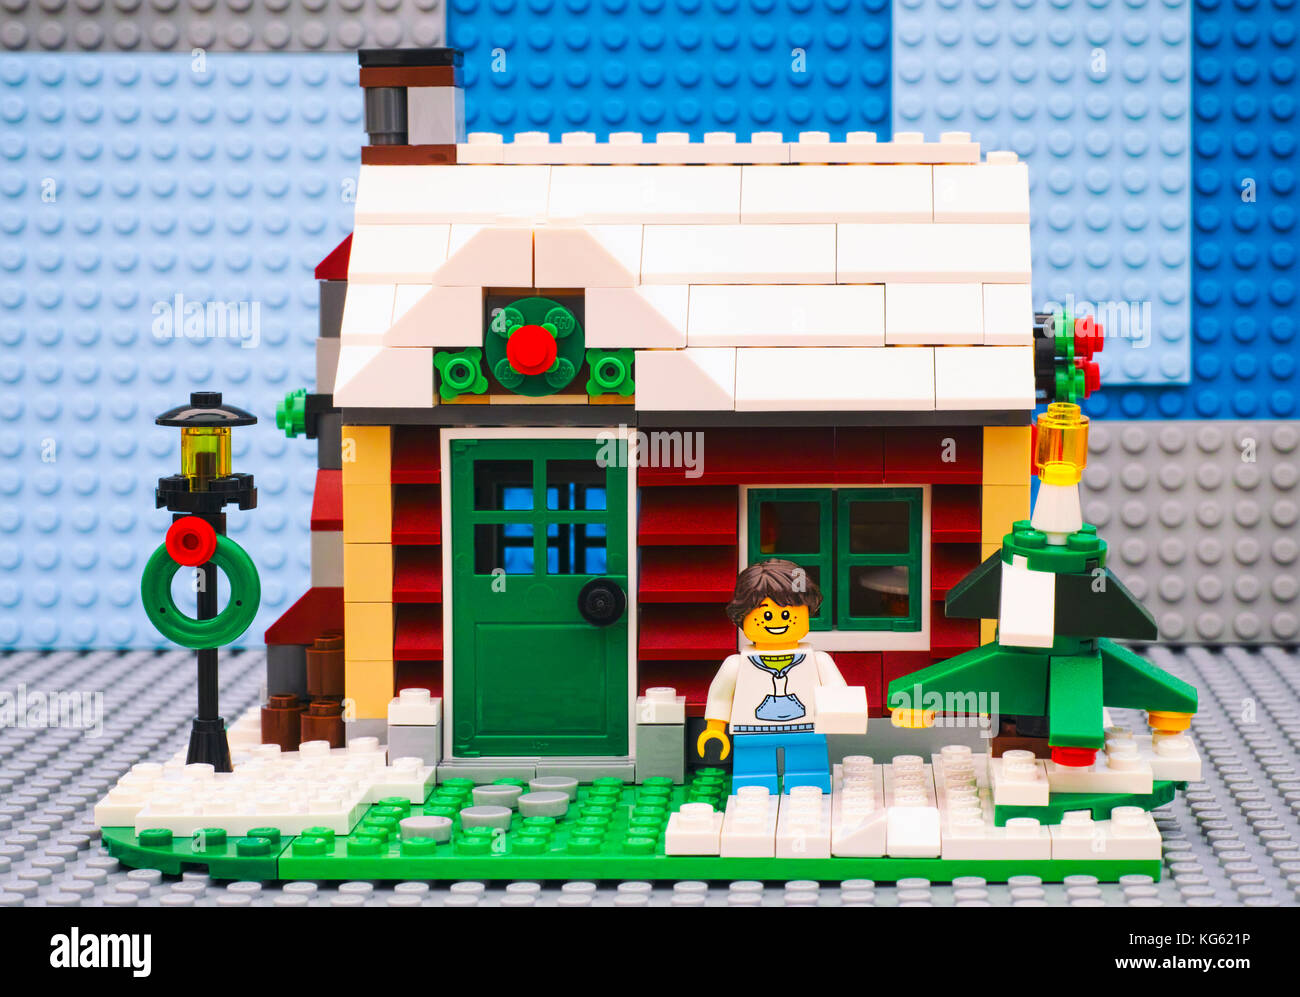 lego house white stockfotos lego house white bilder alamy. Black Bedroom Furniture Sets. Home Design Ideas